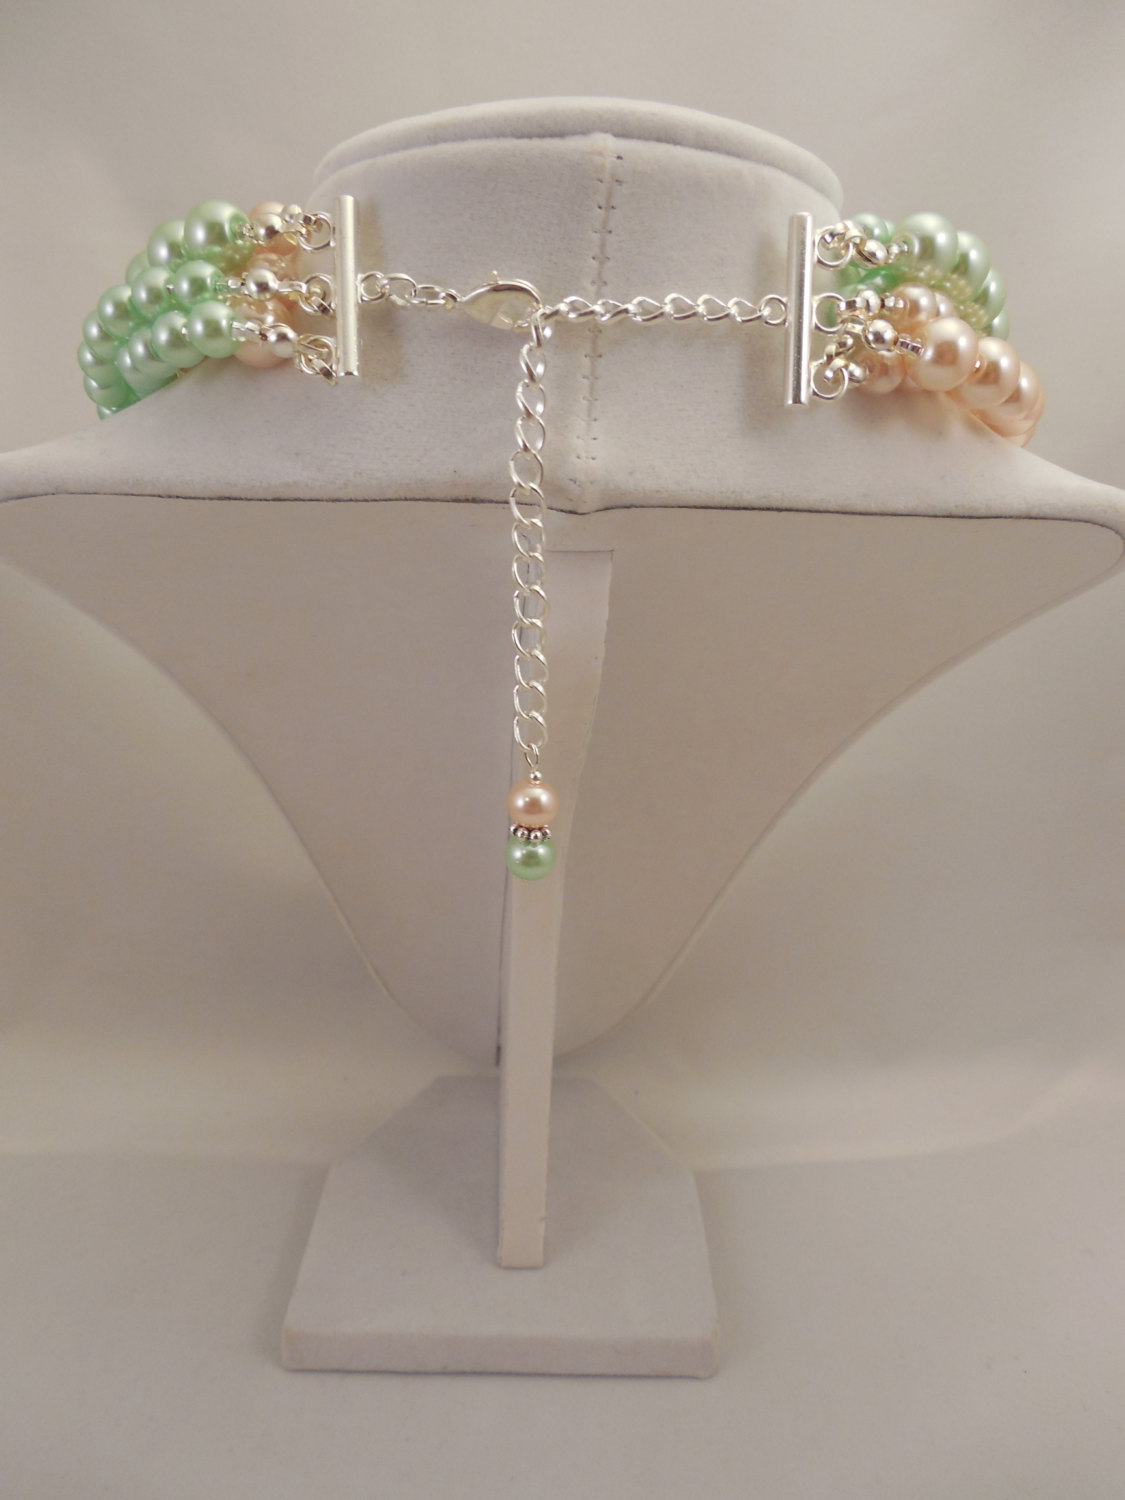 Multi Strand Choker Style Necklace with Blush Peach & Mint Green Glass Pearls